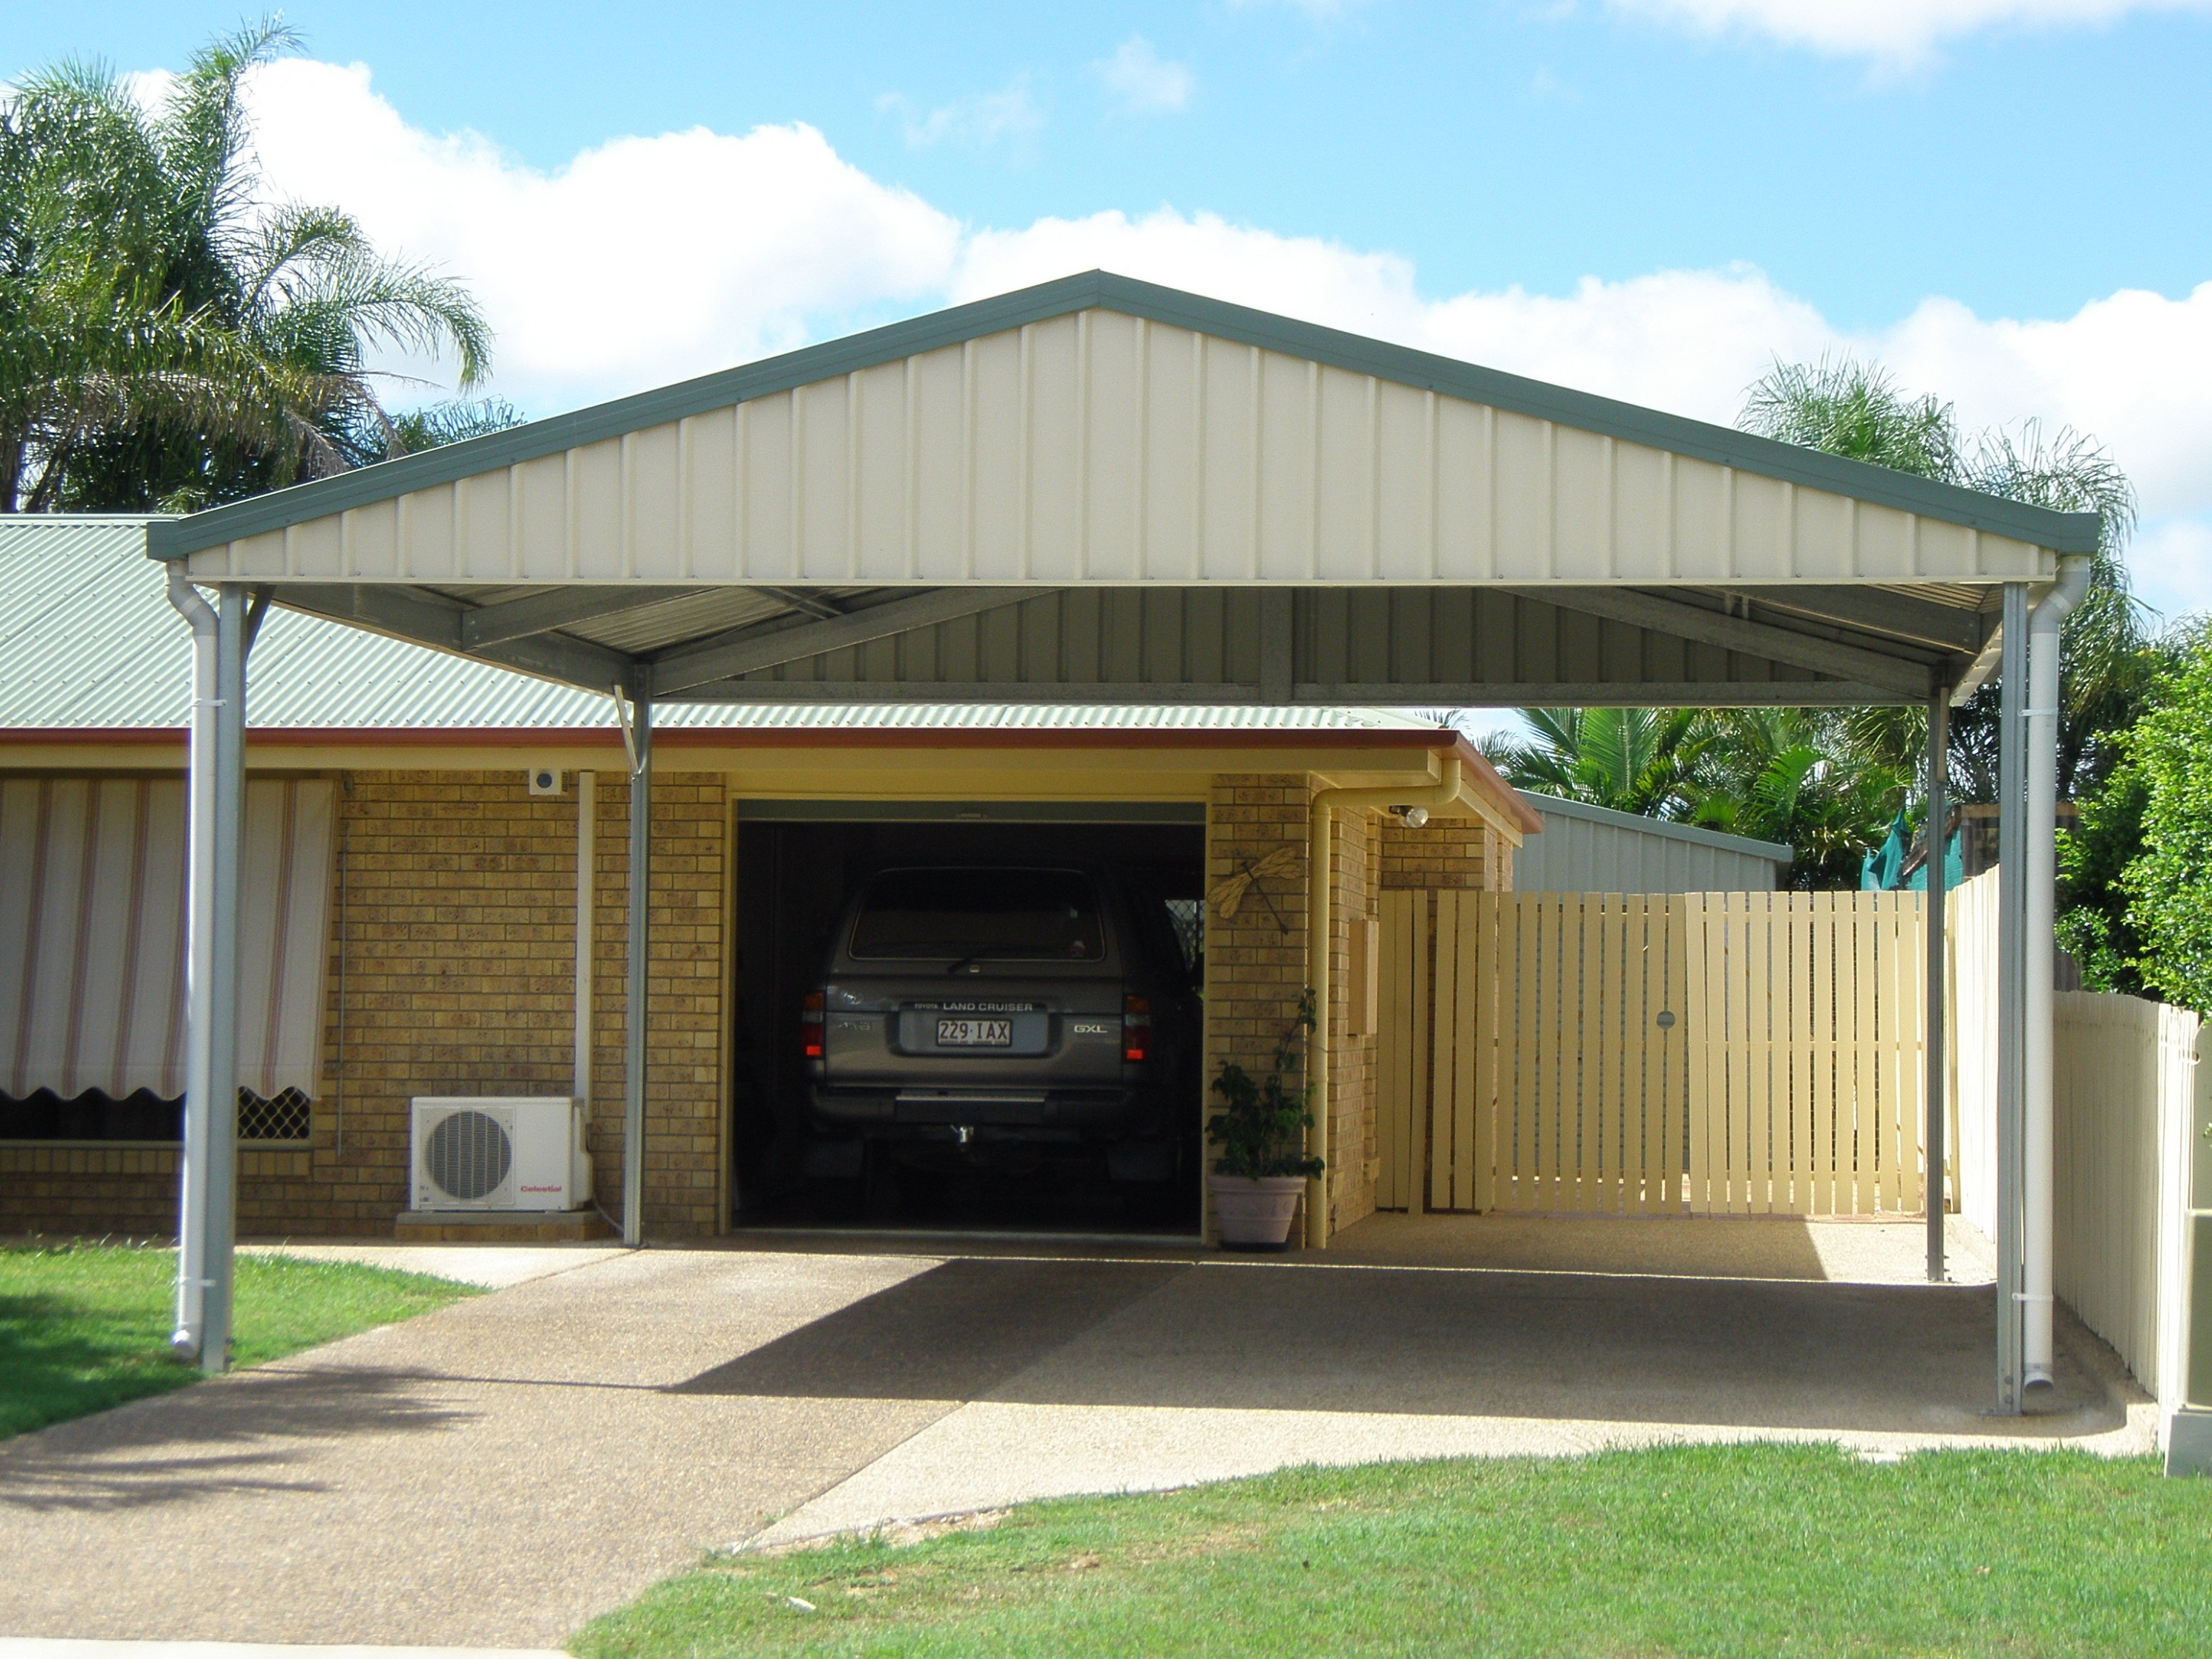 Carports | Fully Constructed & DIY Kit Options | Colorbond Steel Carport Modern Kit